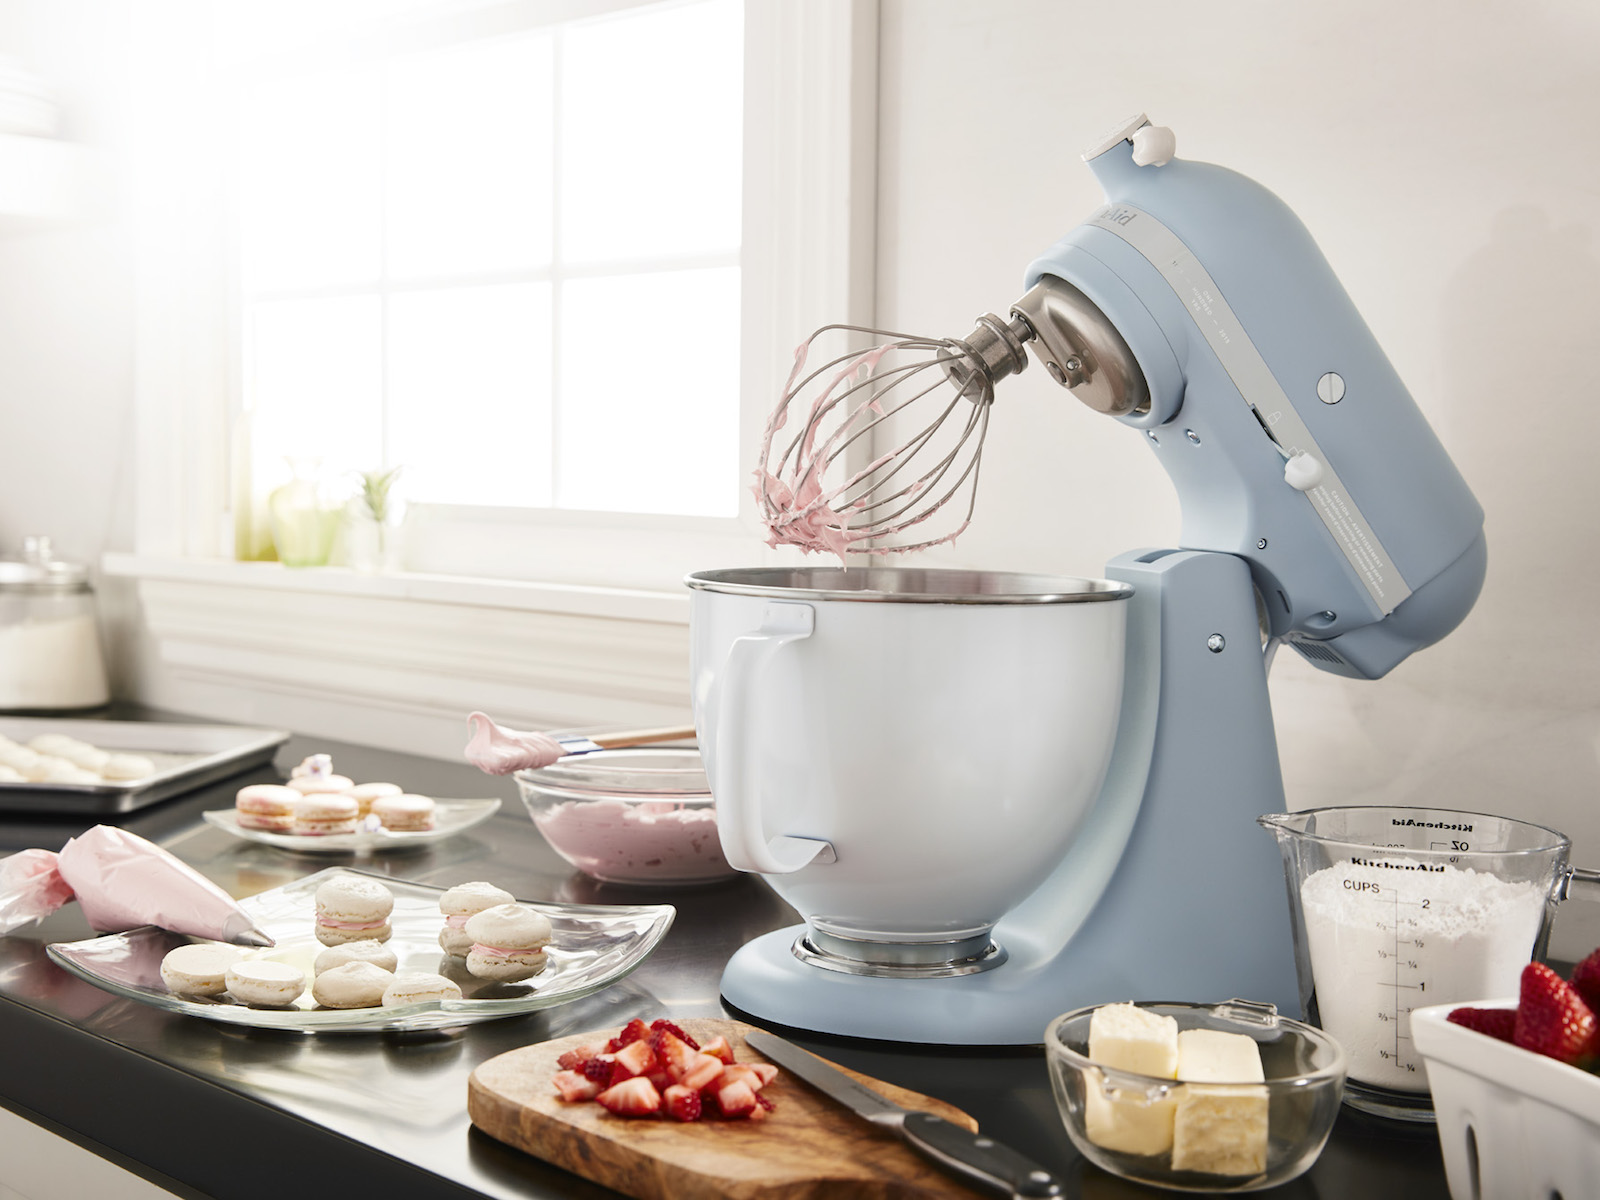 KitchenAid Just Released a Retro-Inspired Mixer Color to Celebrate the Brand's 100th Anniversary kitchenaid-misty-blue-steel-FT-BLOG0818